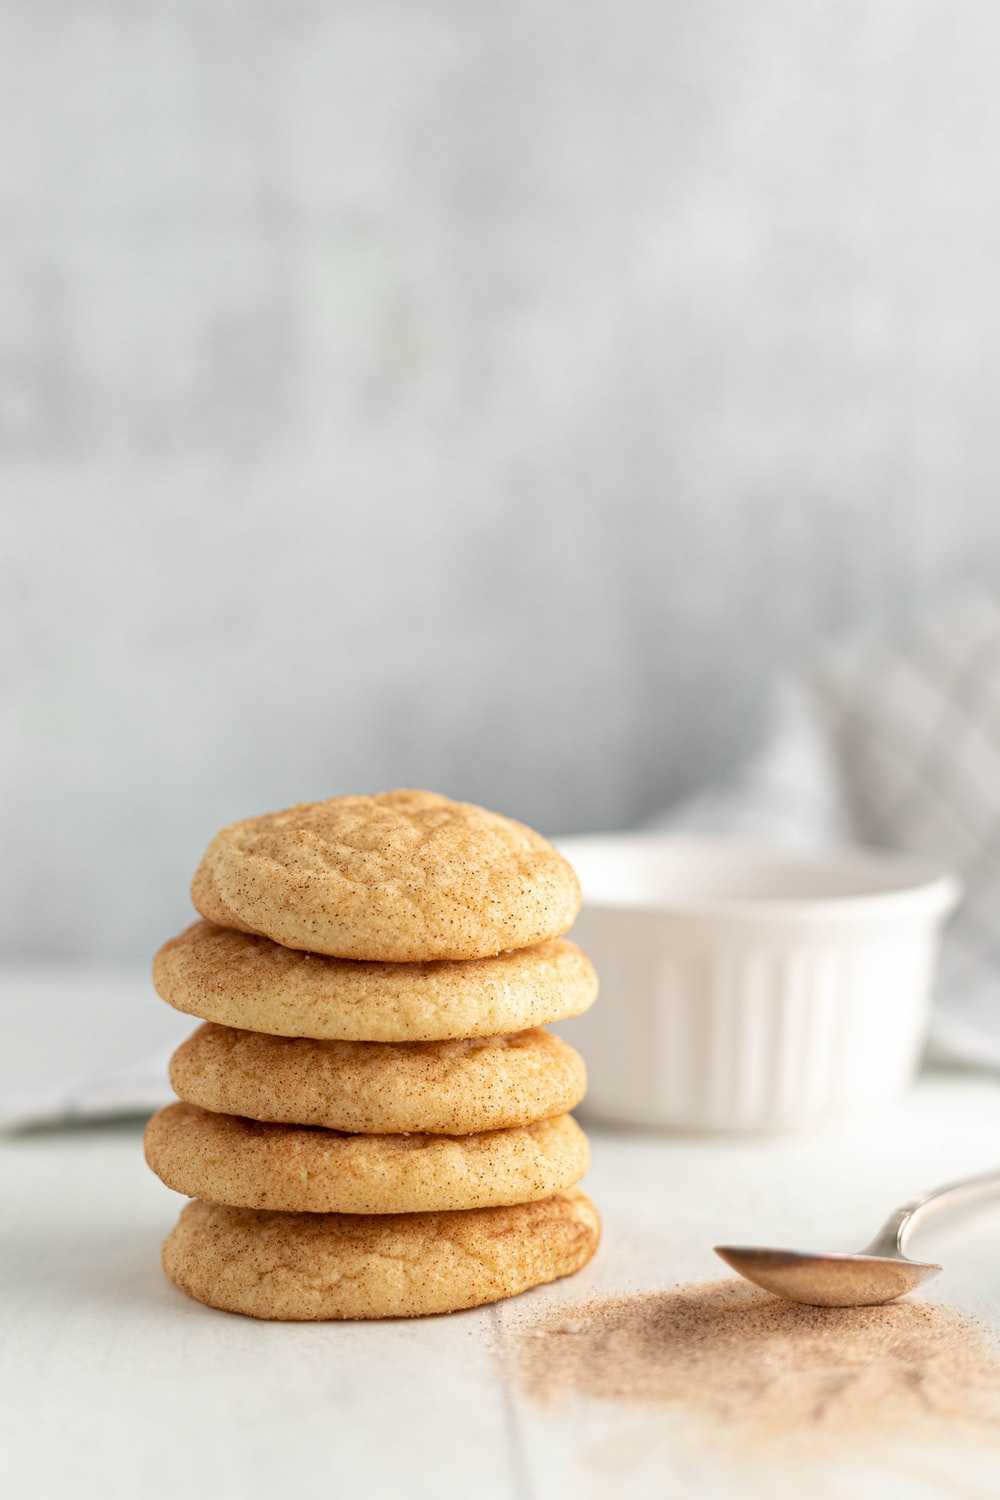 biscuits near the spoon